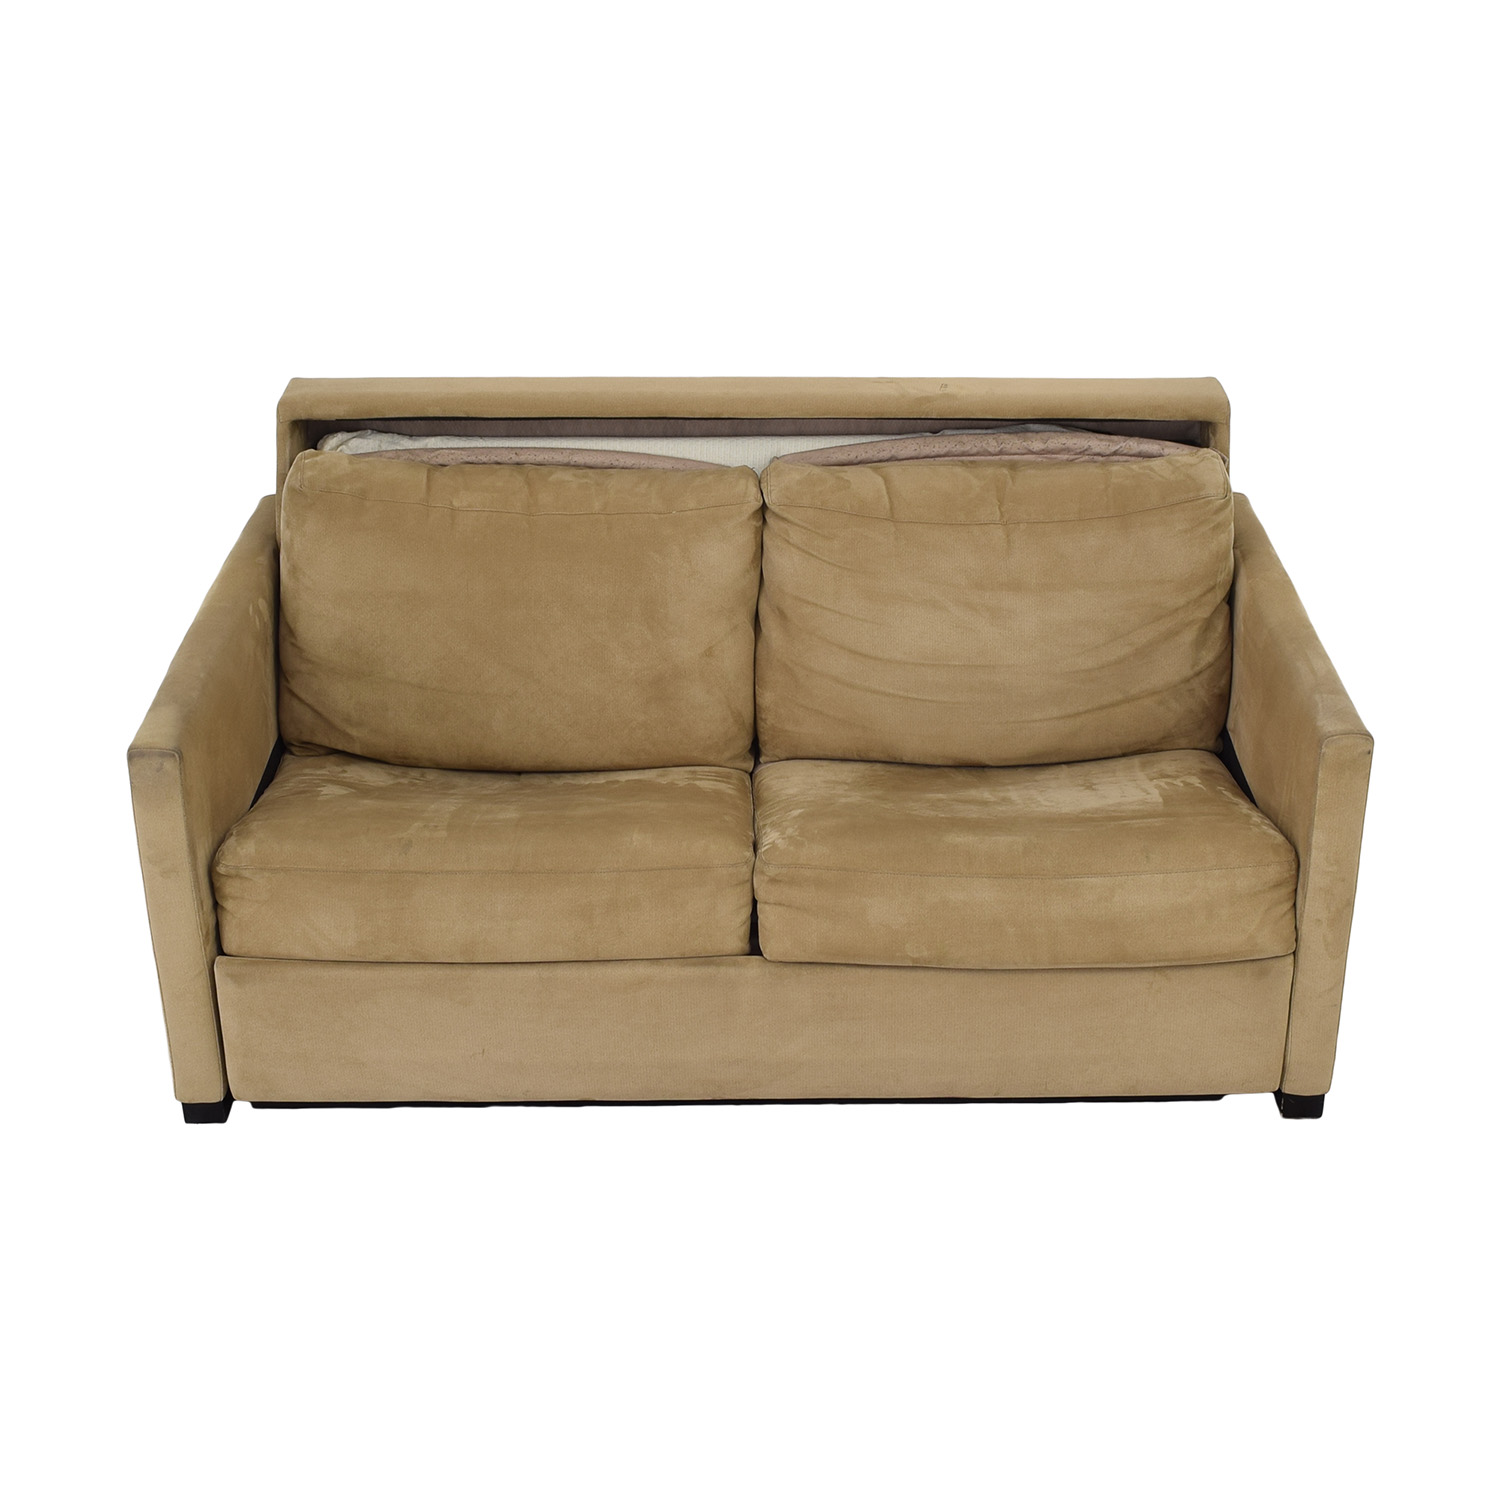 American Leather American Leather Patterson Sleeper Sofa with Ottoman used